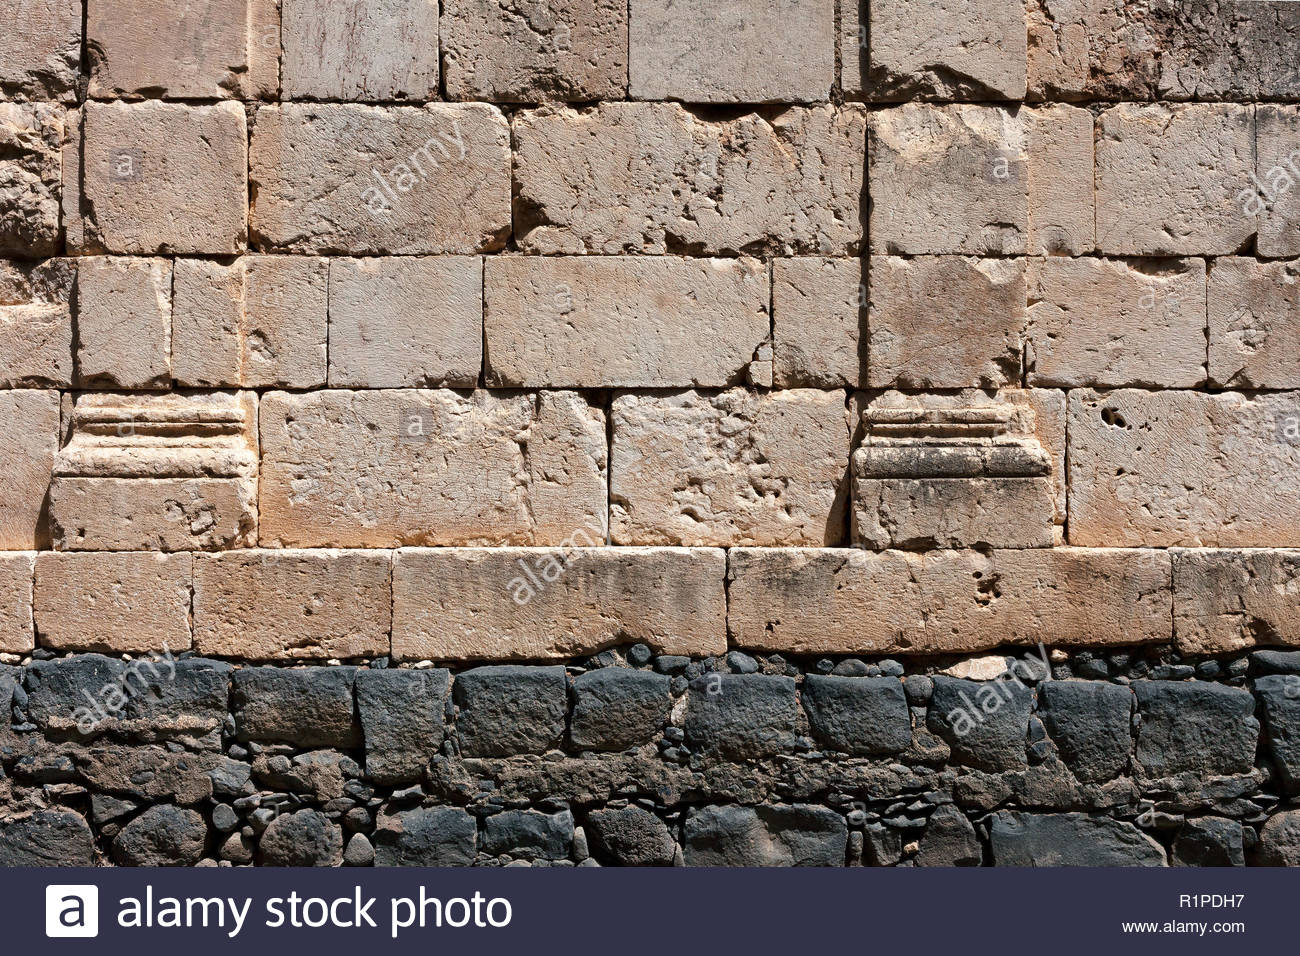 Synagogue wall at Capernaum; calcareous stone wall built on a basalt stone base - Stock Image